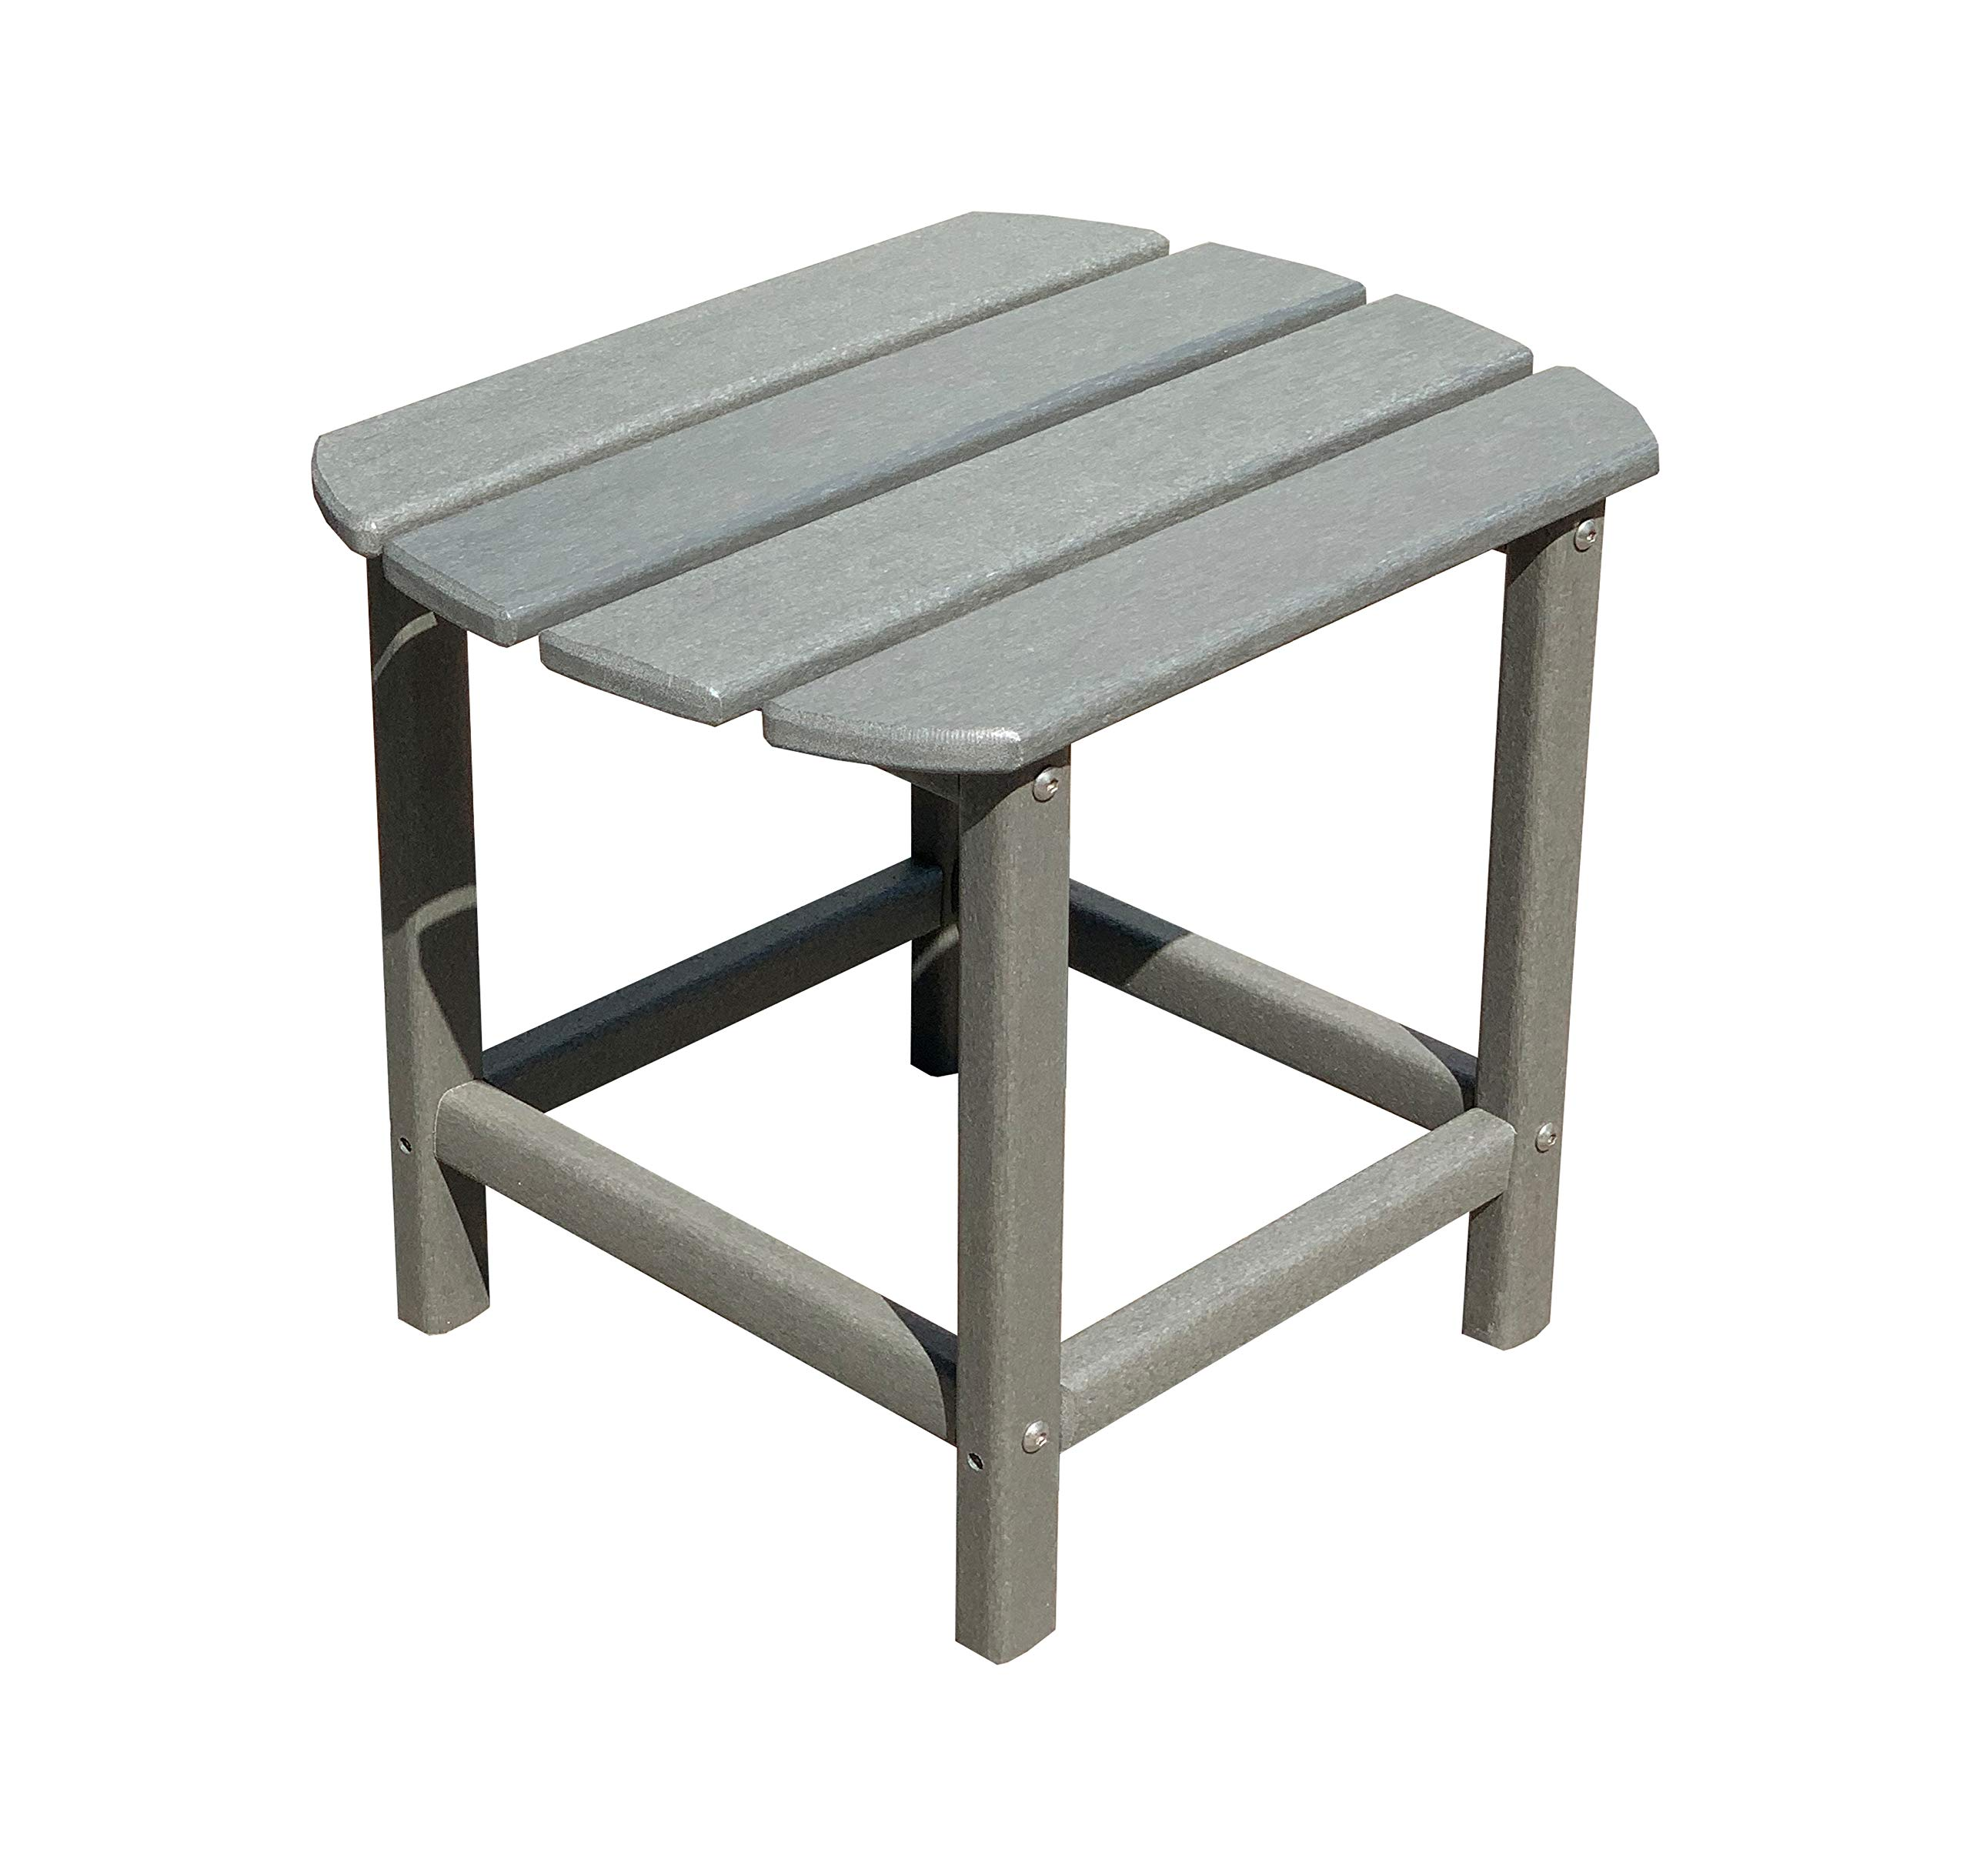 LuXeo LUX-1520-GRY-ST Corona Recycled Plastic Side Table, Gray by LuXeo